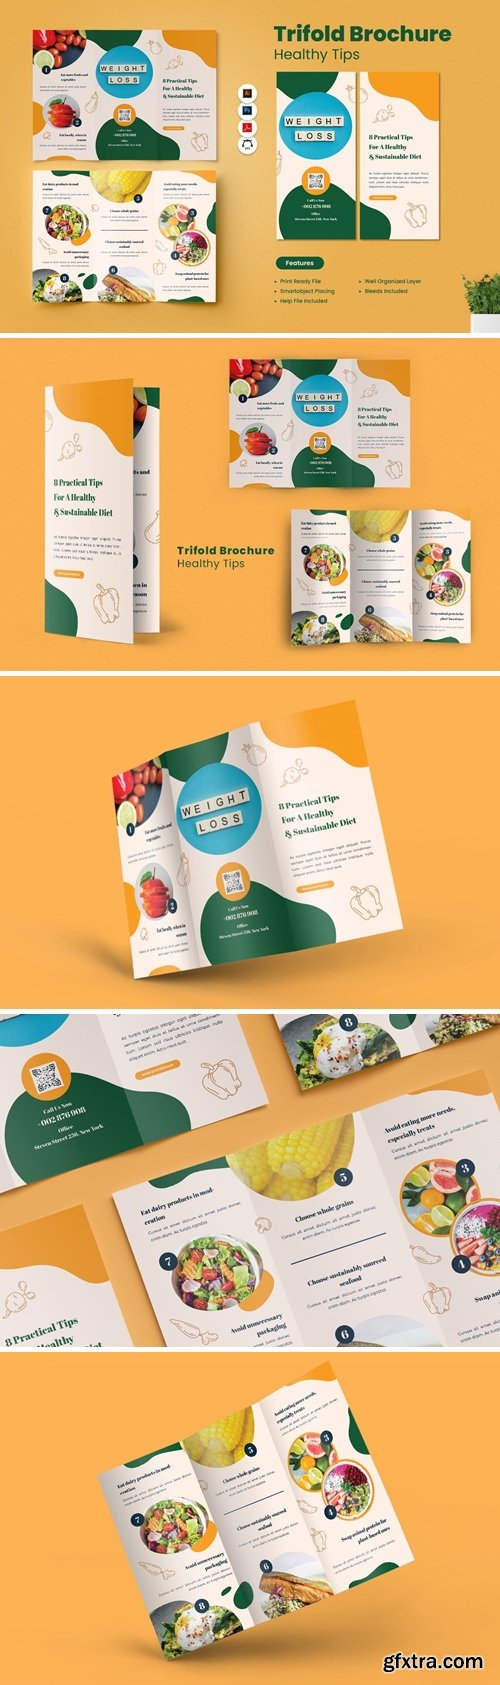 Healthy Tips Trifold Brochure